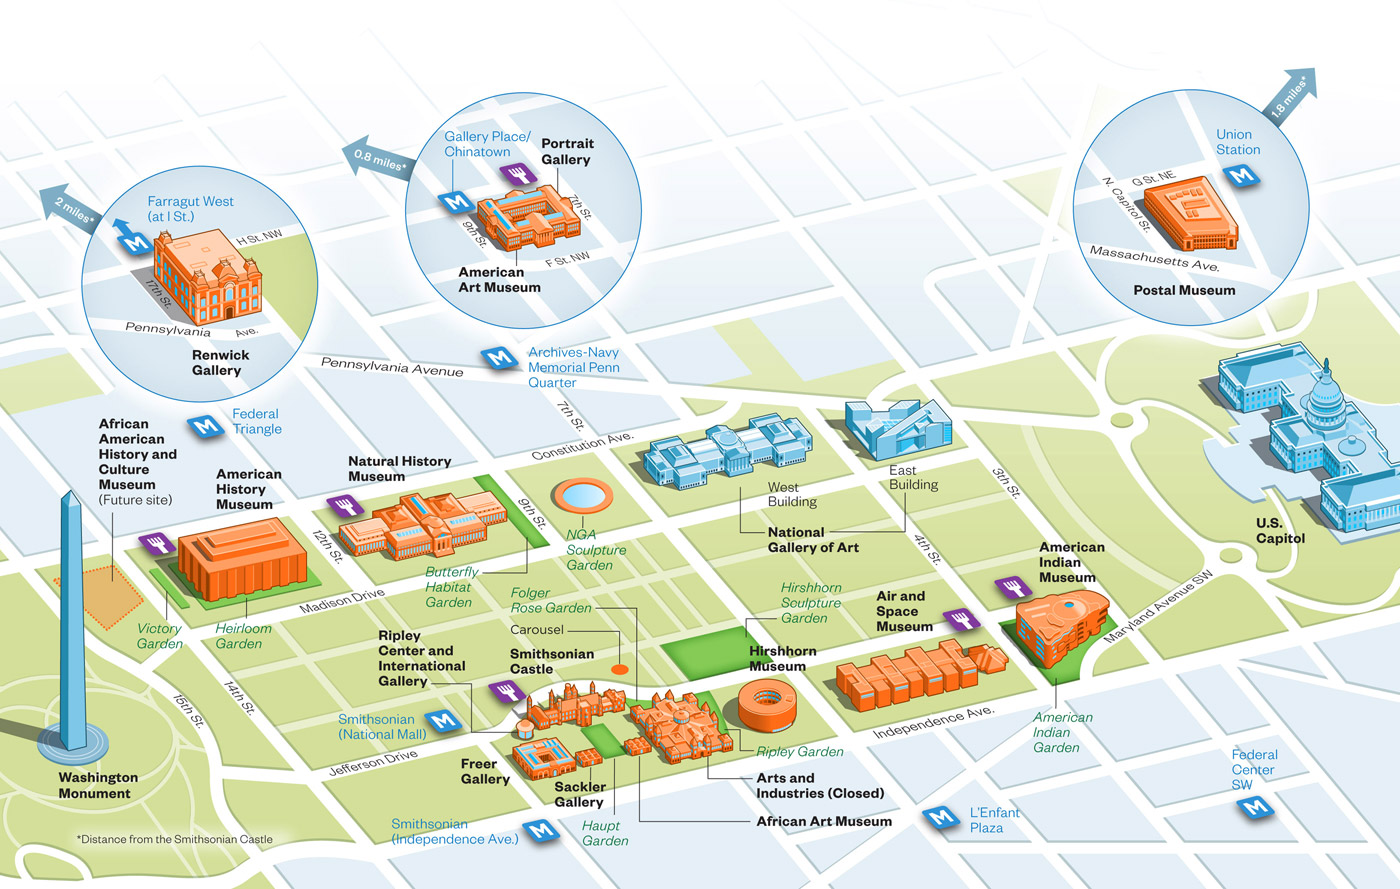 Map showing Smithsonian Institution museums on and near the National Mall in Washington, D.C.